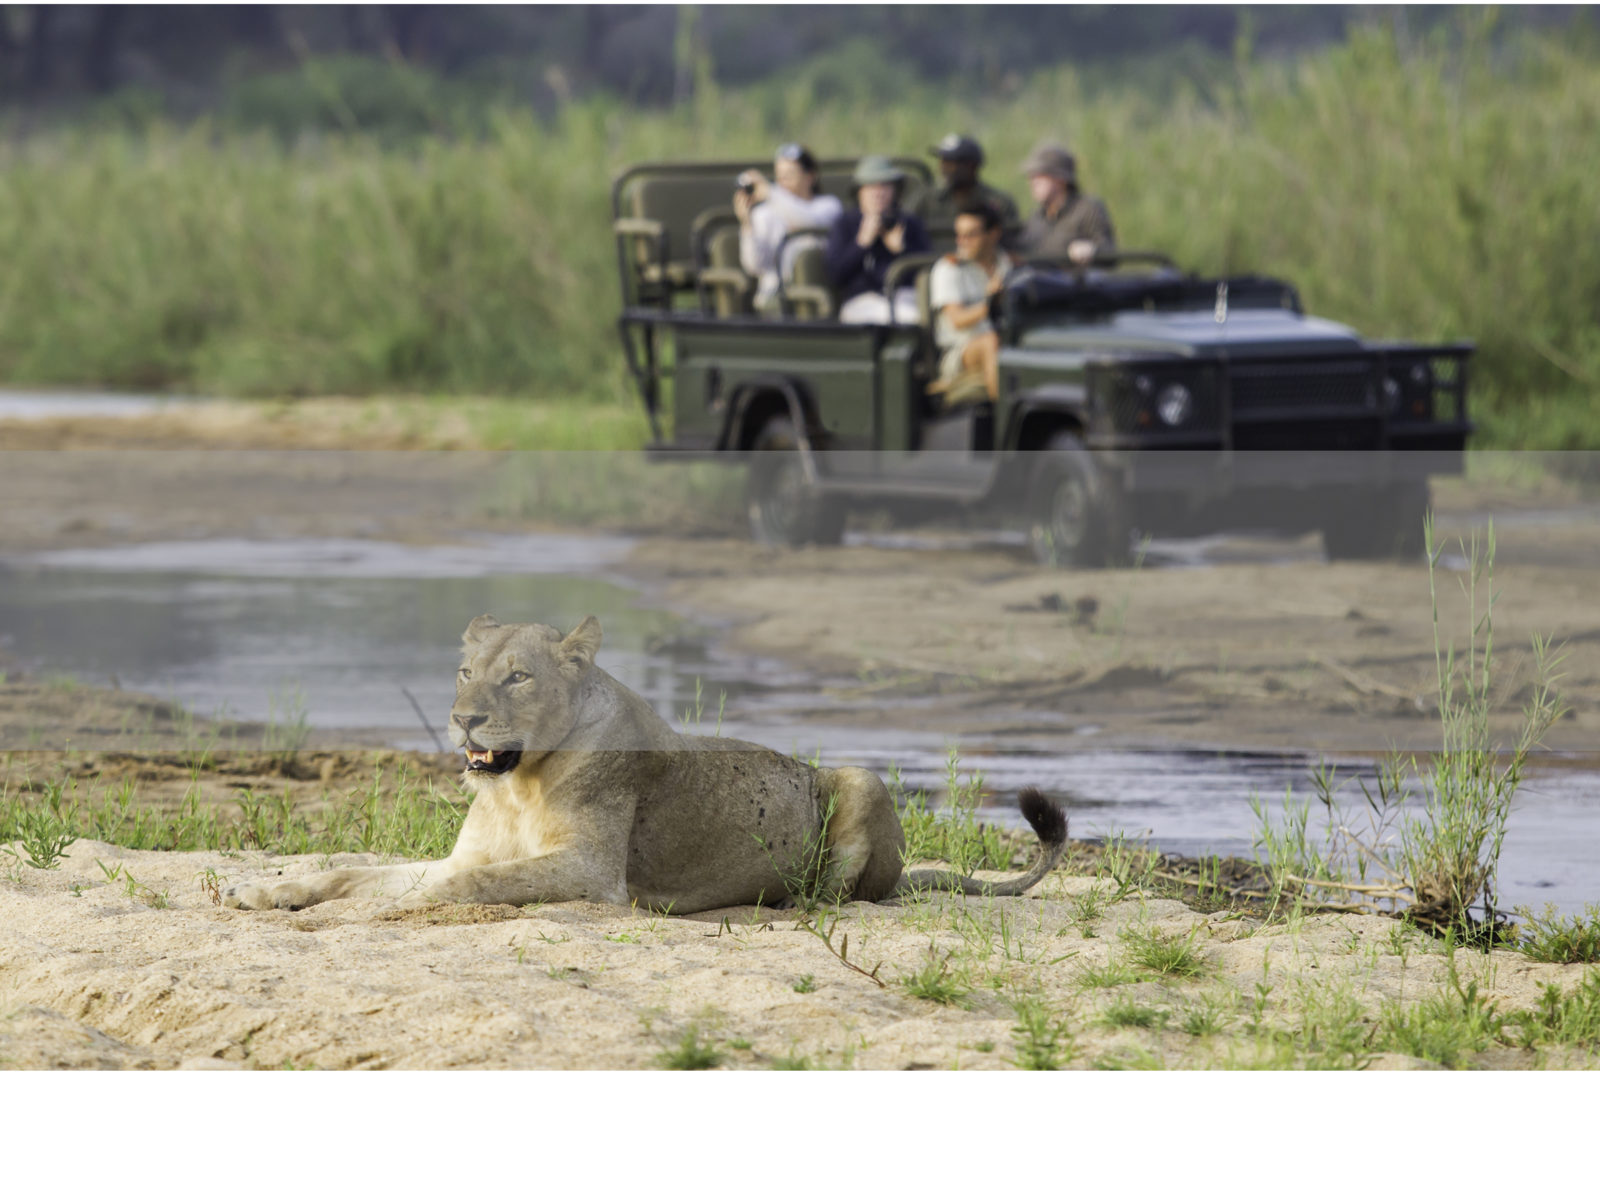 South Africa Safari, FiveZero safaris